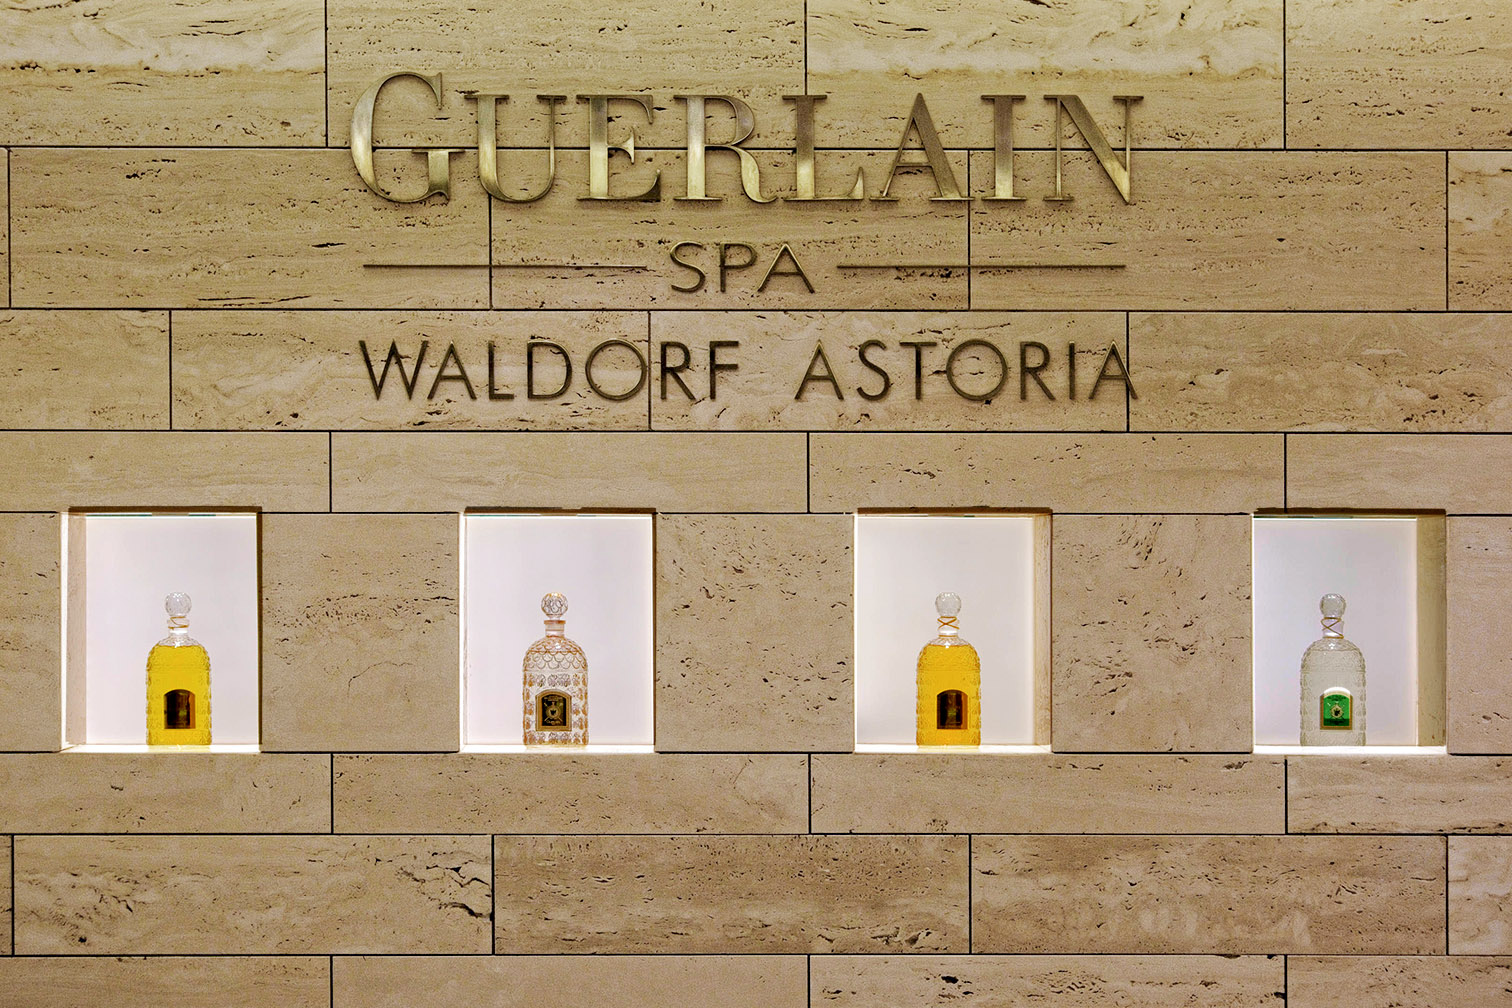 guerlain spa berlin at waldorf astoria luxury travelers guide. Black Bedroom Furniture Sets. Home Design Ideas